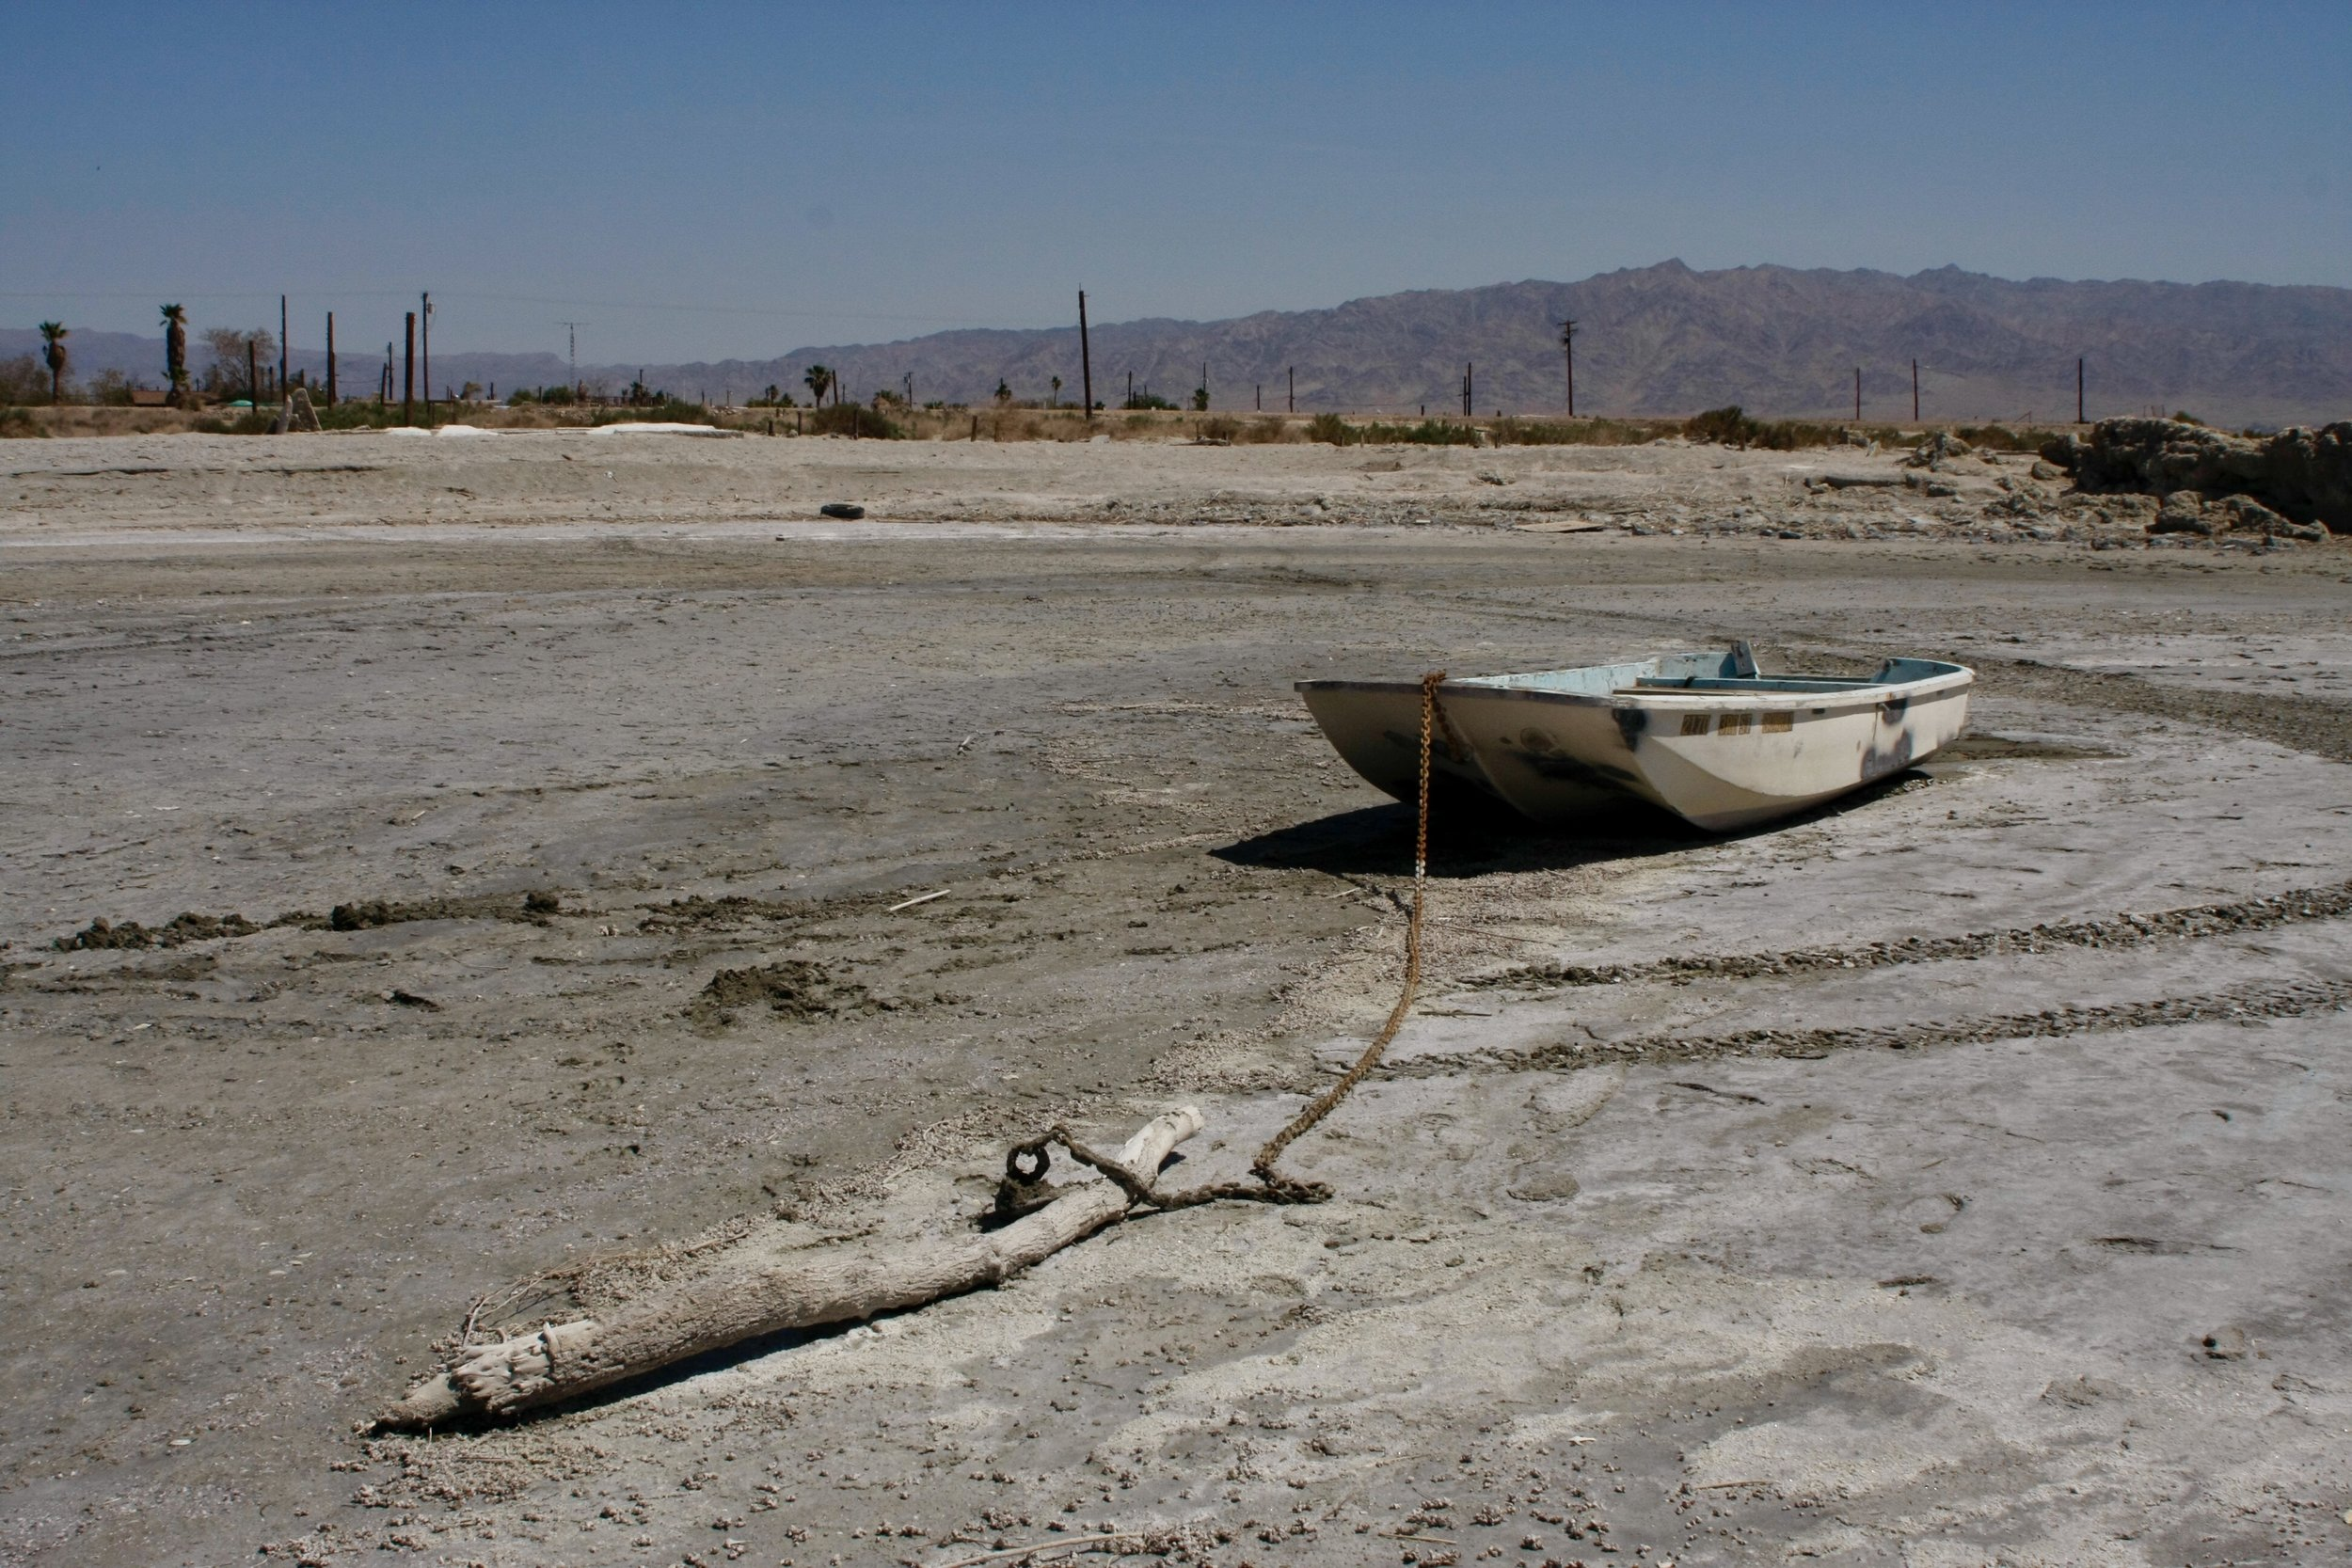 A rowboat sits abandoned on a dry lakebed near the community of Bombay Beach, Calif. on May 17, 2017. (Photo by Ethan Jakob Craft.)